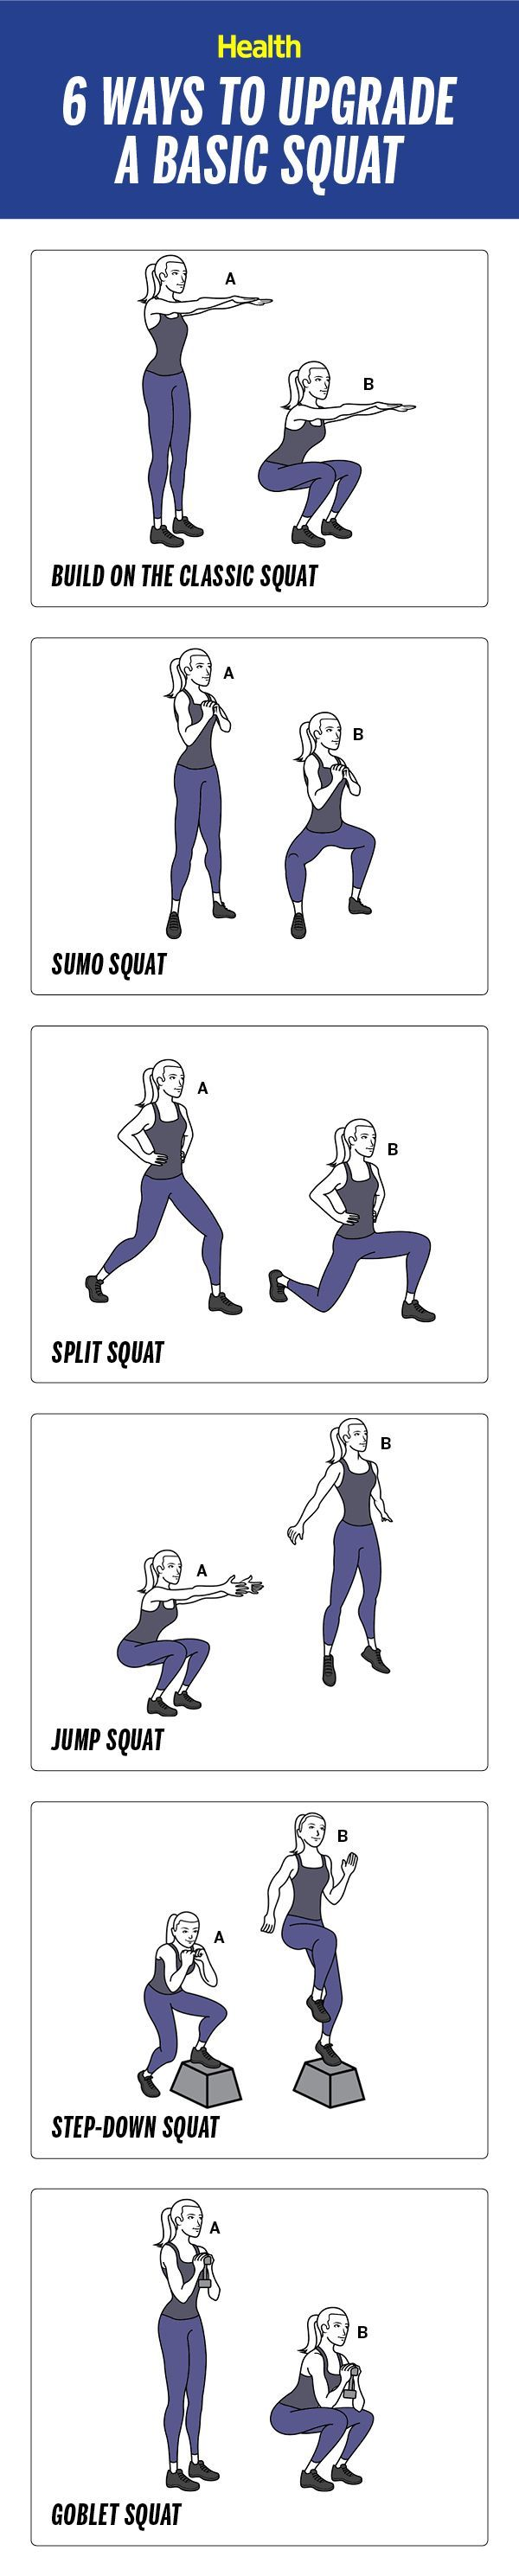 6 ways to upgrade a basic squat: Five squat variations so you can chisel your core and build a better butt   Health.com